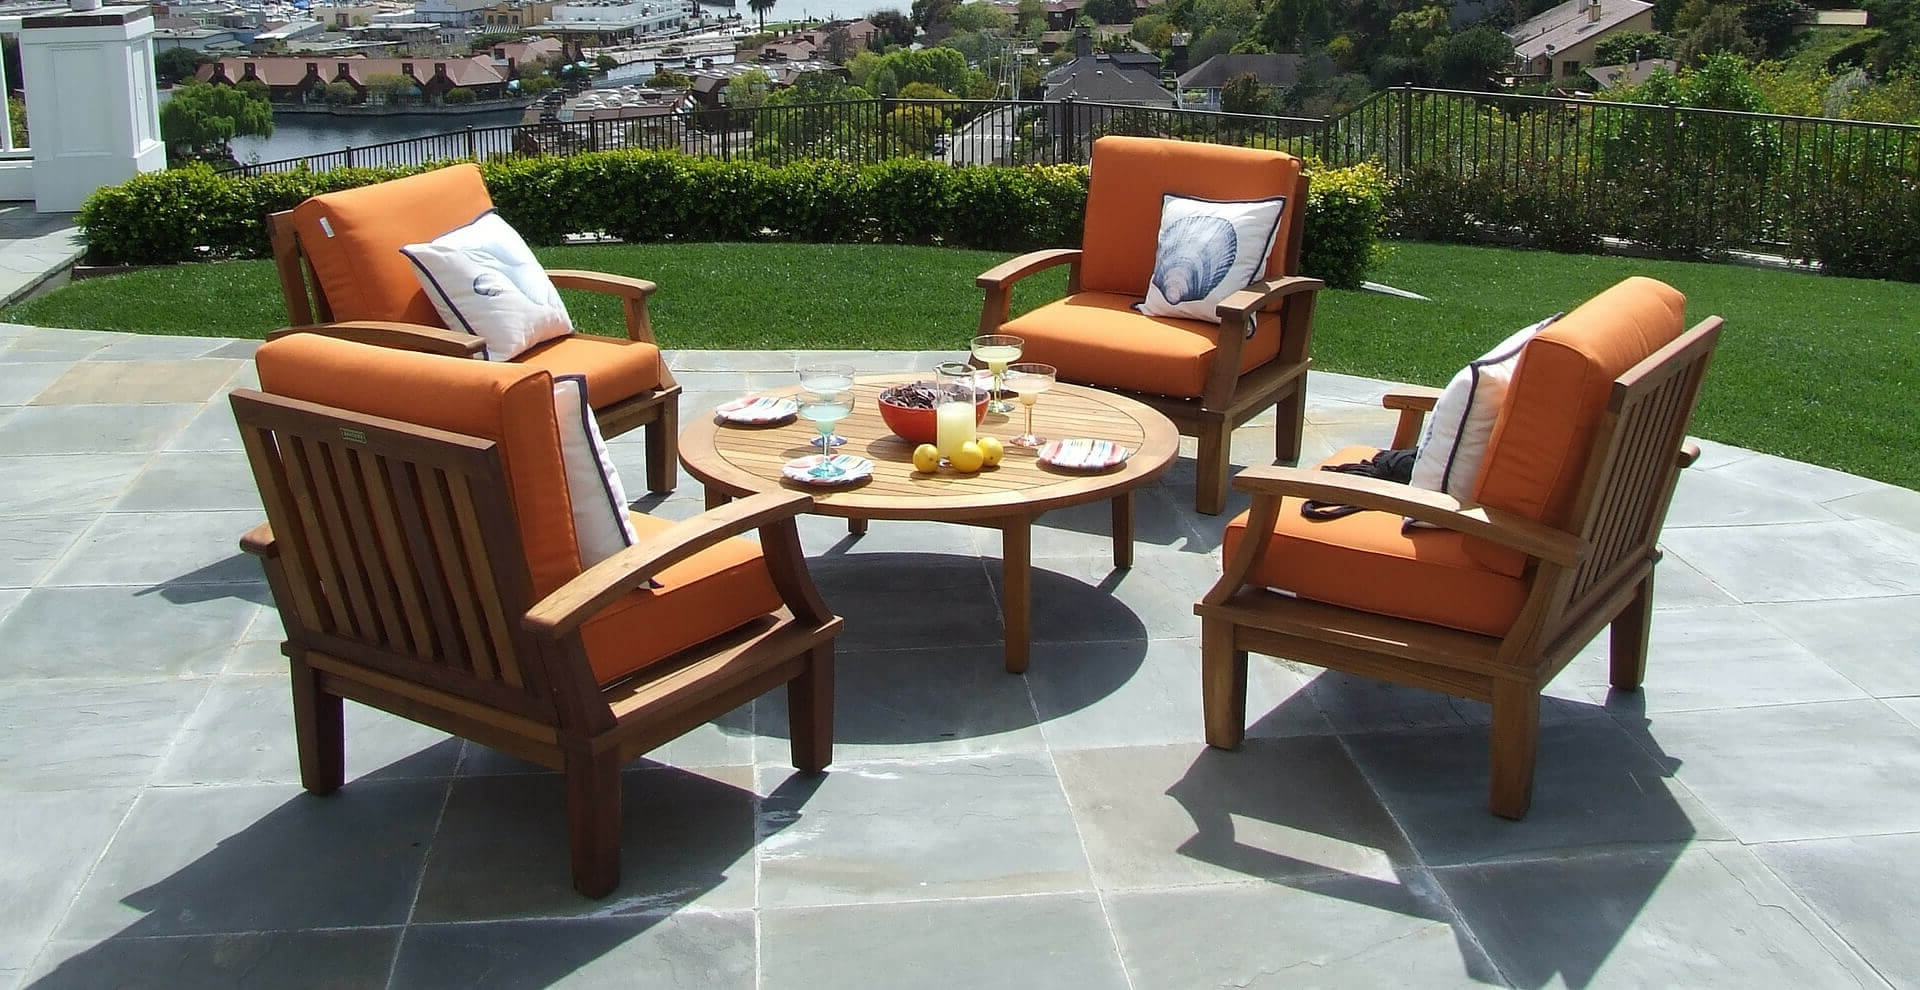 Trendy Patio Conversation Sets Under $500 Throughout 6 Best Patio Furniture Under $500 – Comparesix (View 17 of 20)